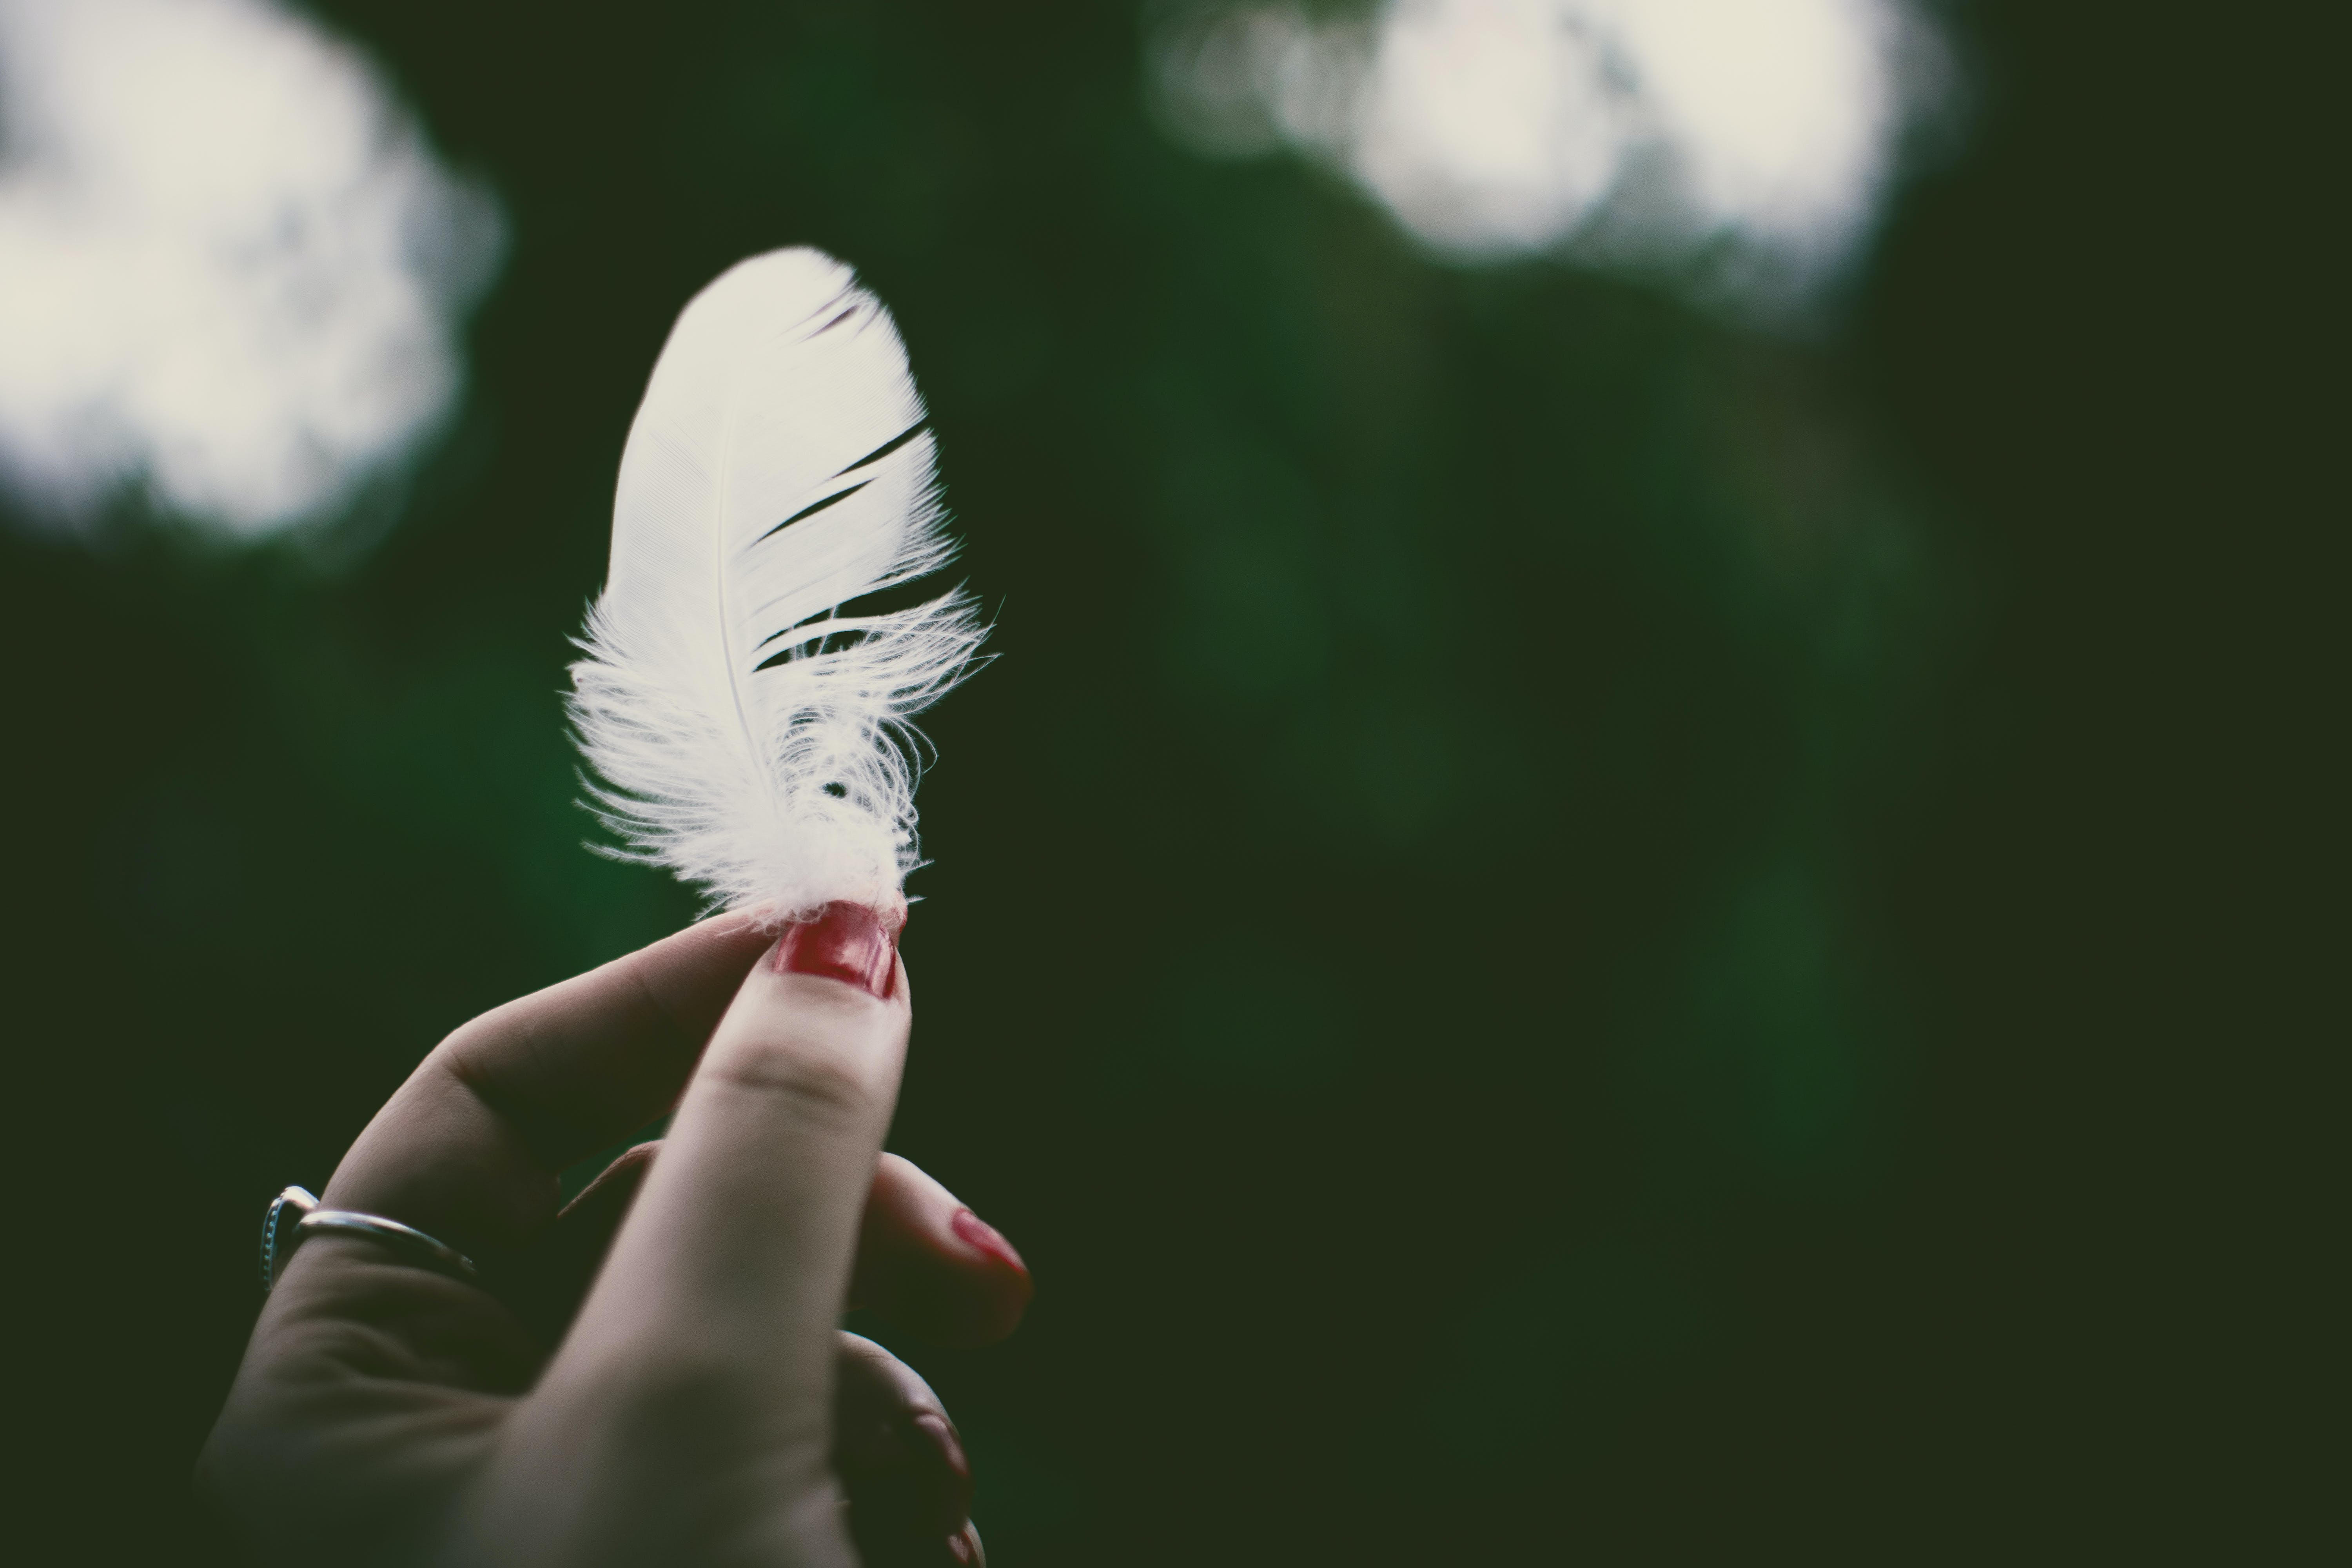 Person Holding White Feather in Selective Focus Photography